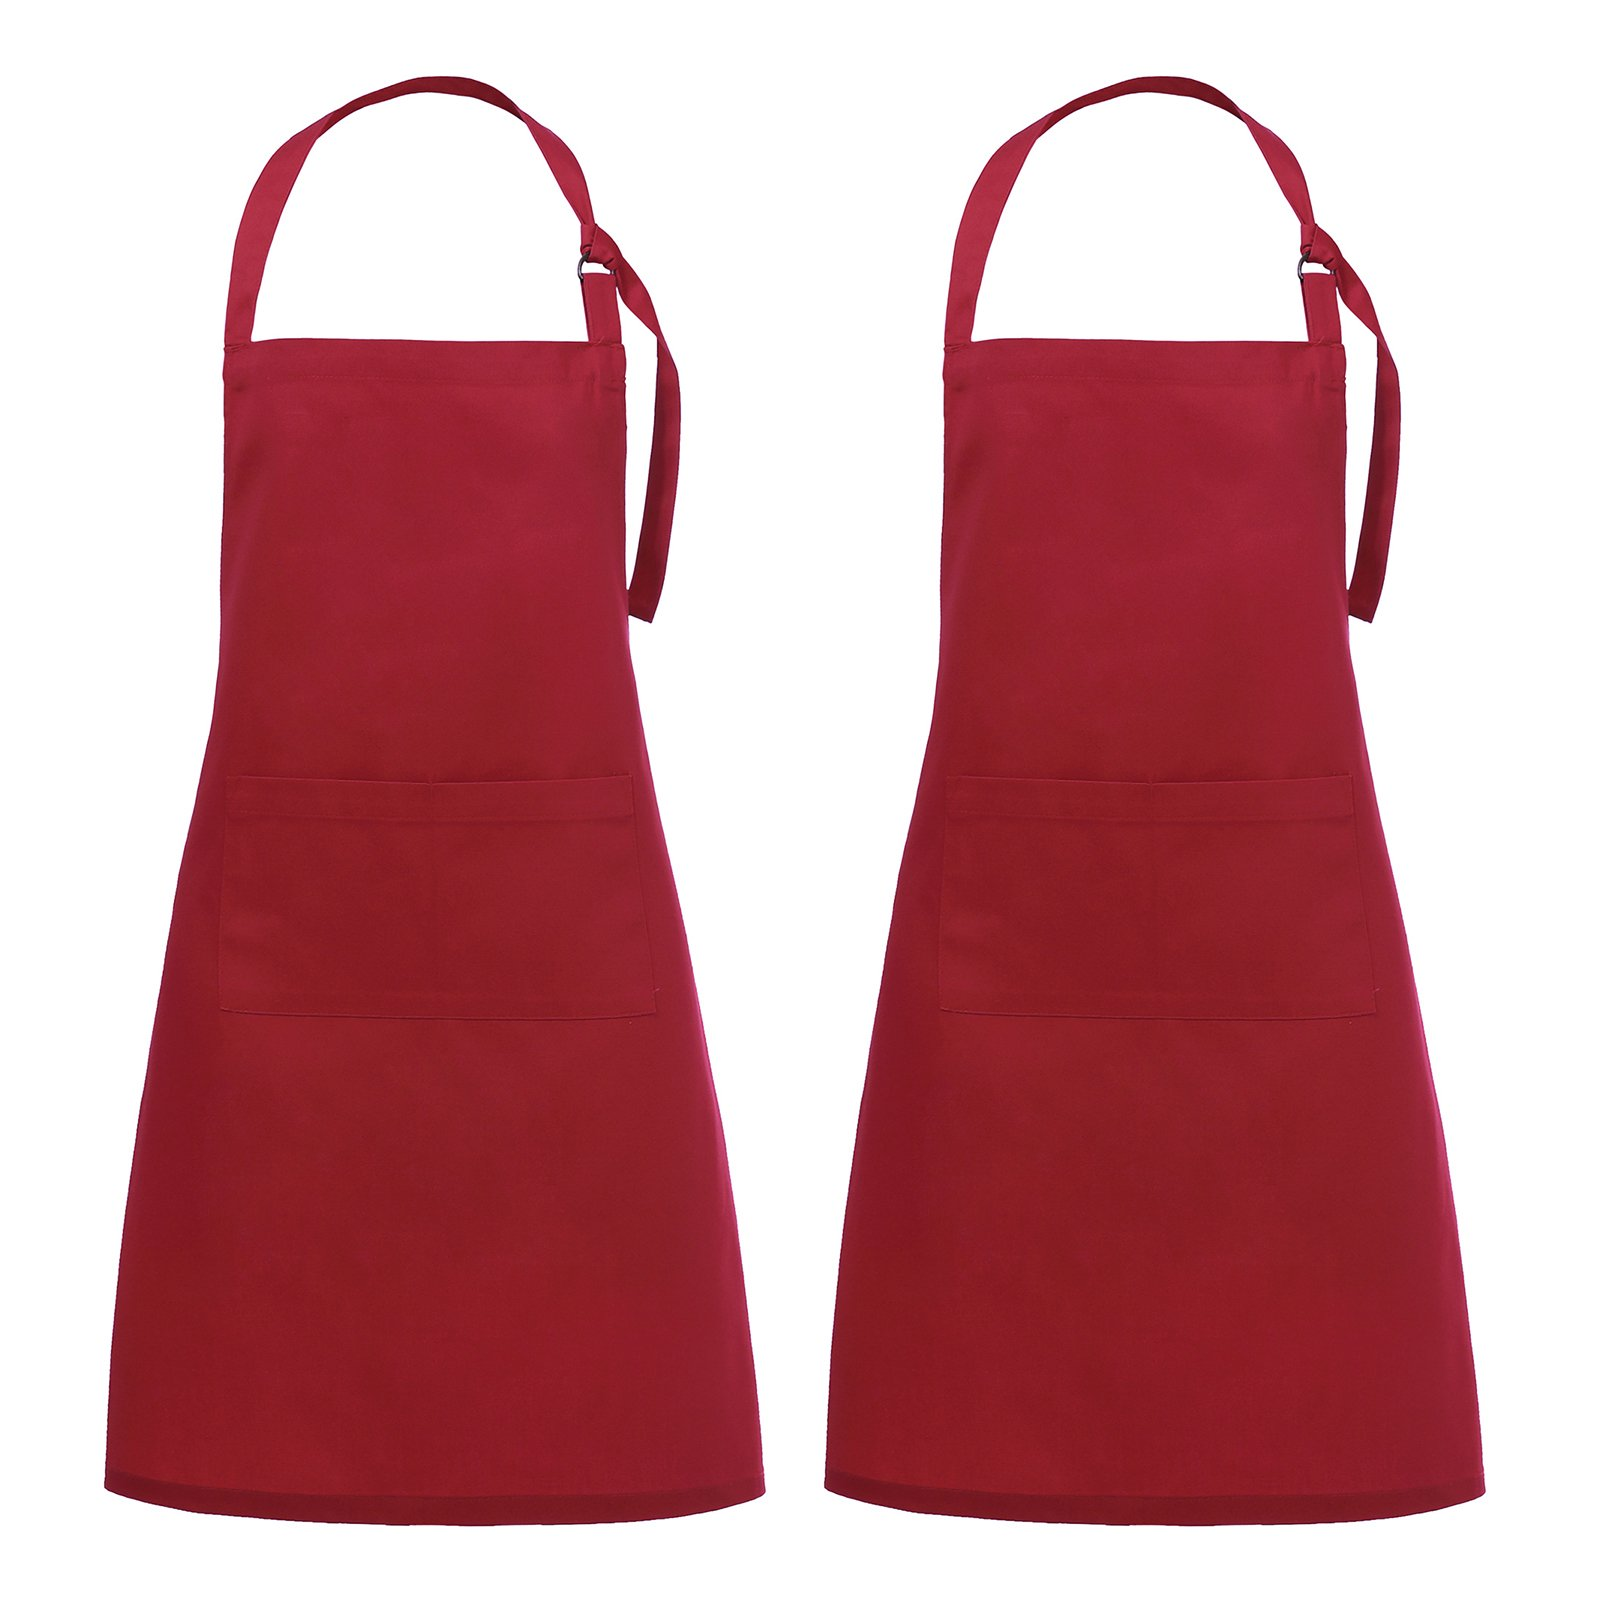 VEEYOO Adjustable Chef Bib Apron with 2 Pockets, Set of 2, Durable Spun Poly Cotton, Cooking Kitchen Restaurant Uniform Aprons for Men Women, 32x28 inches, Red (Available in 11 colors)